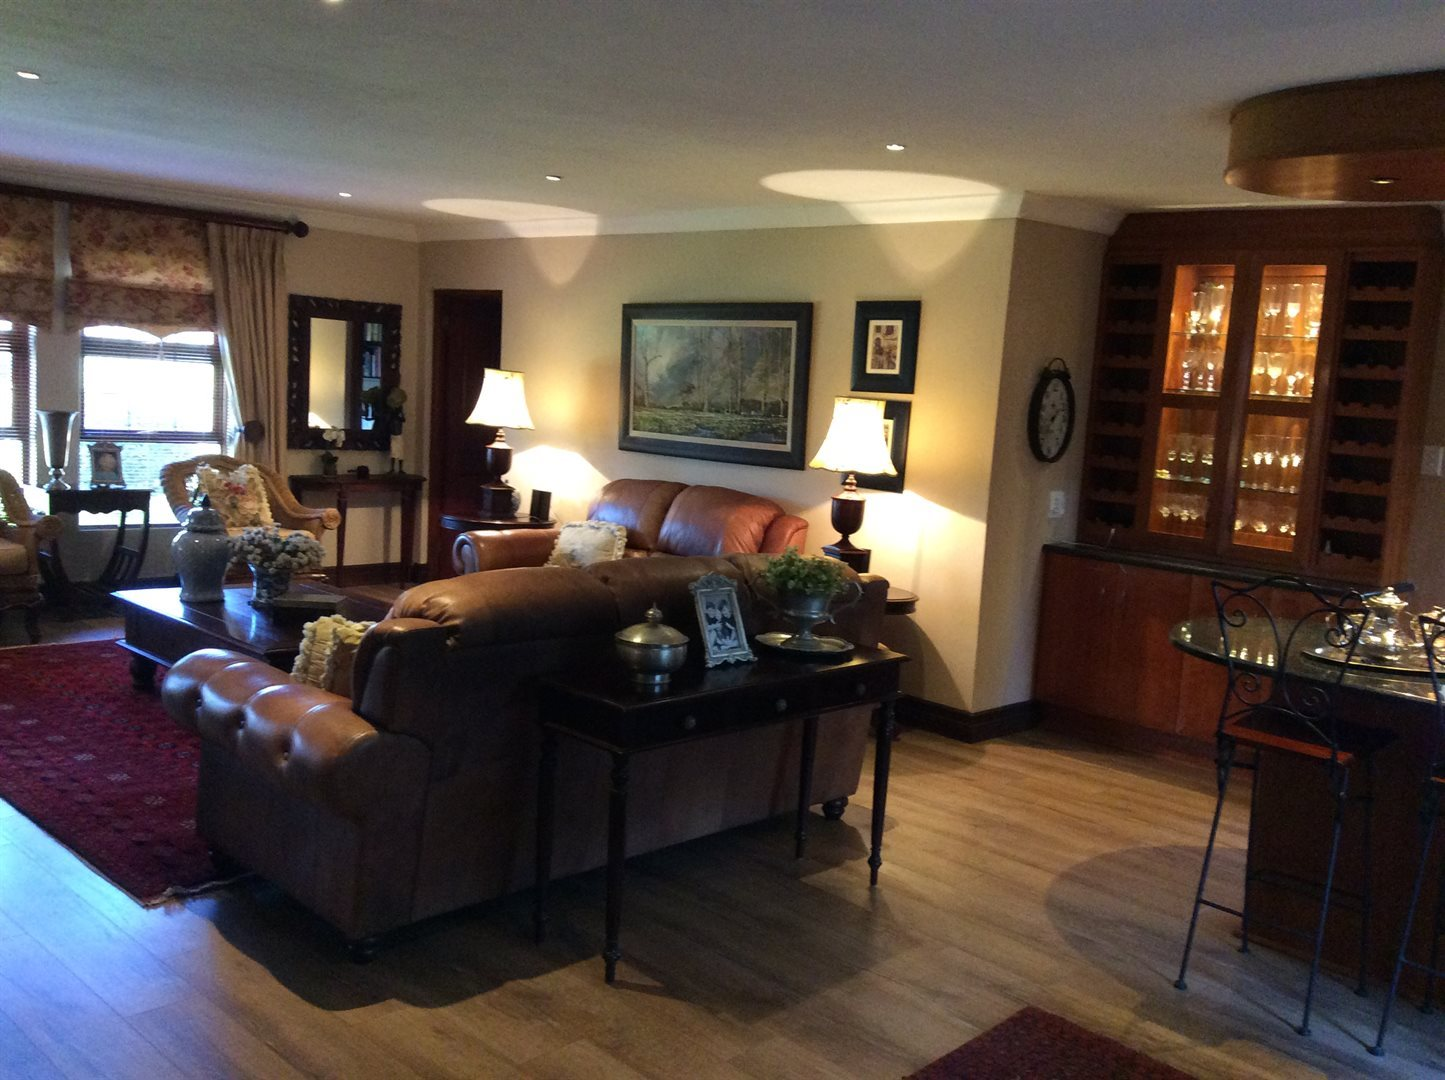 3 Bedroom House for sale in Montana Park ENT0074858 : photo#11